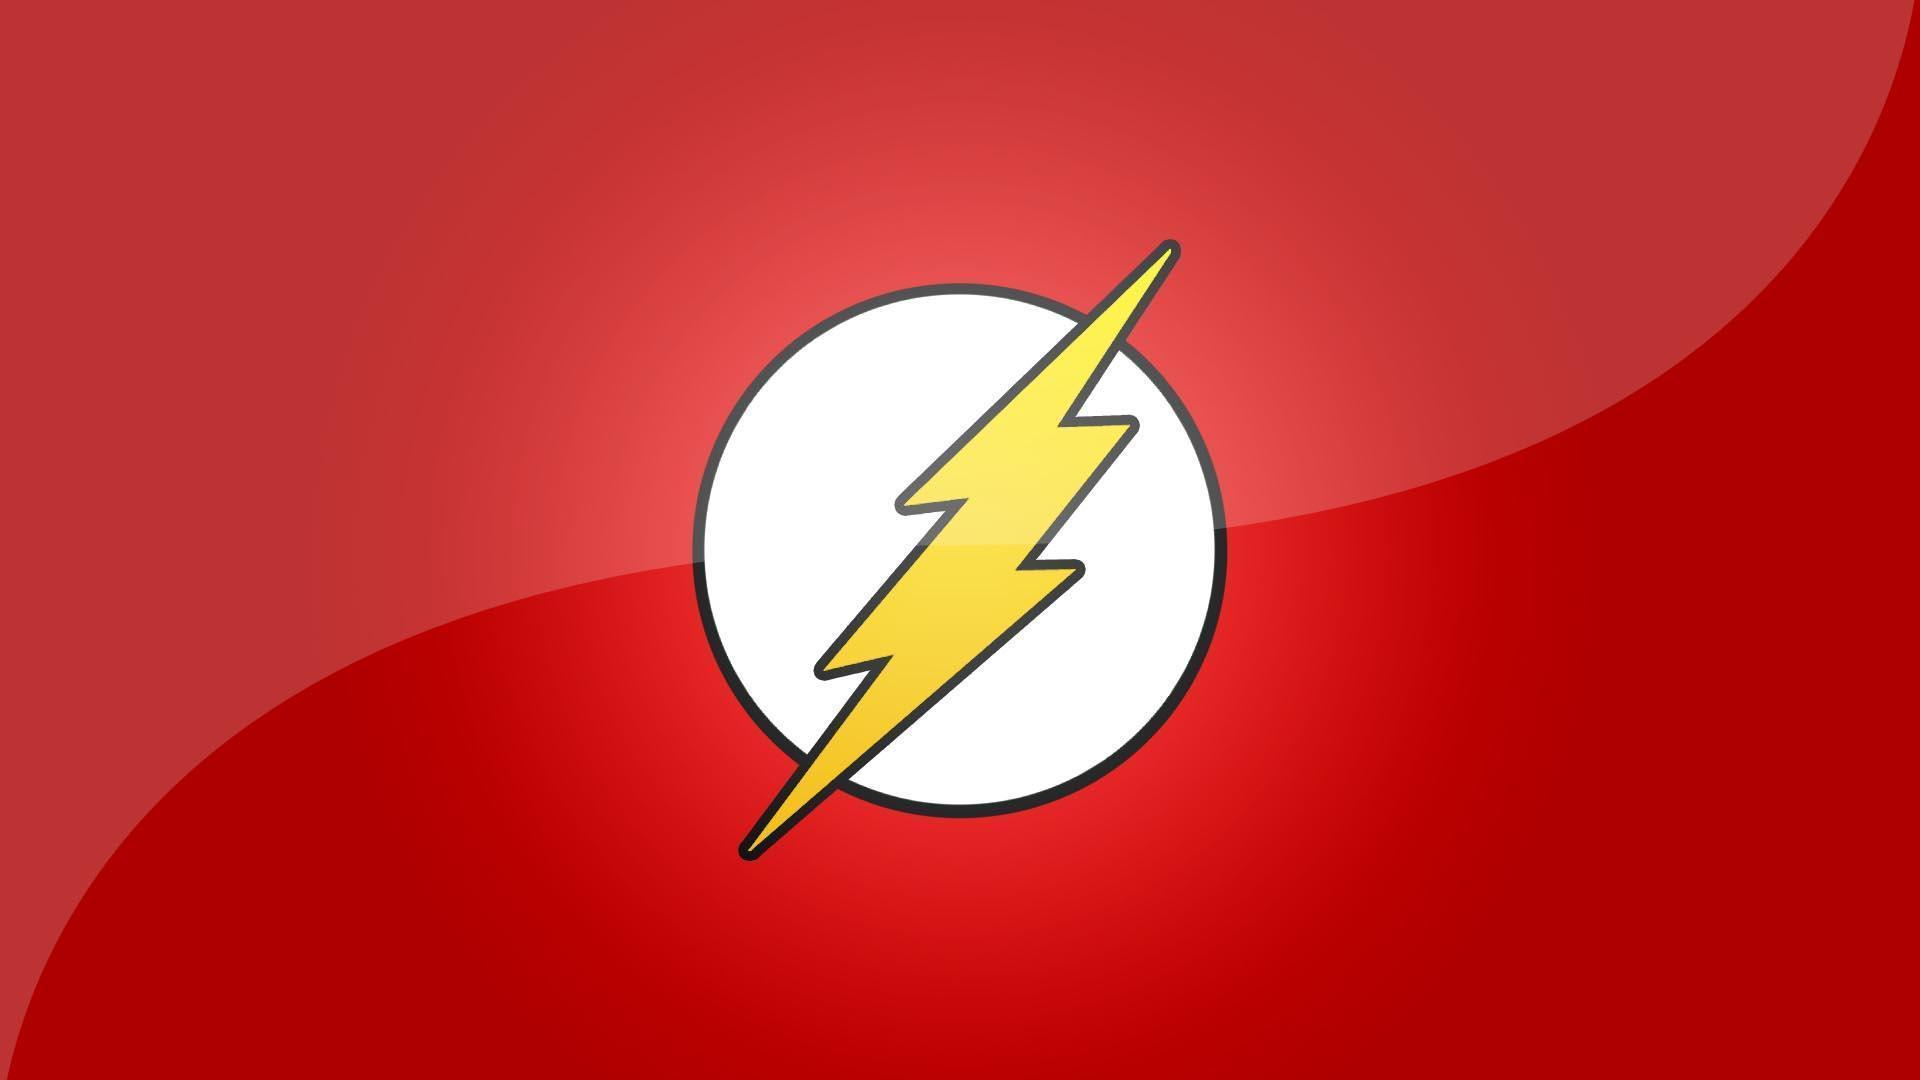 The Flash HD Wallpapers » FullHDWpp